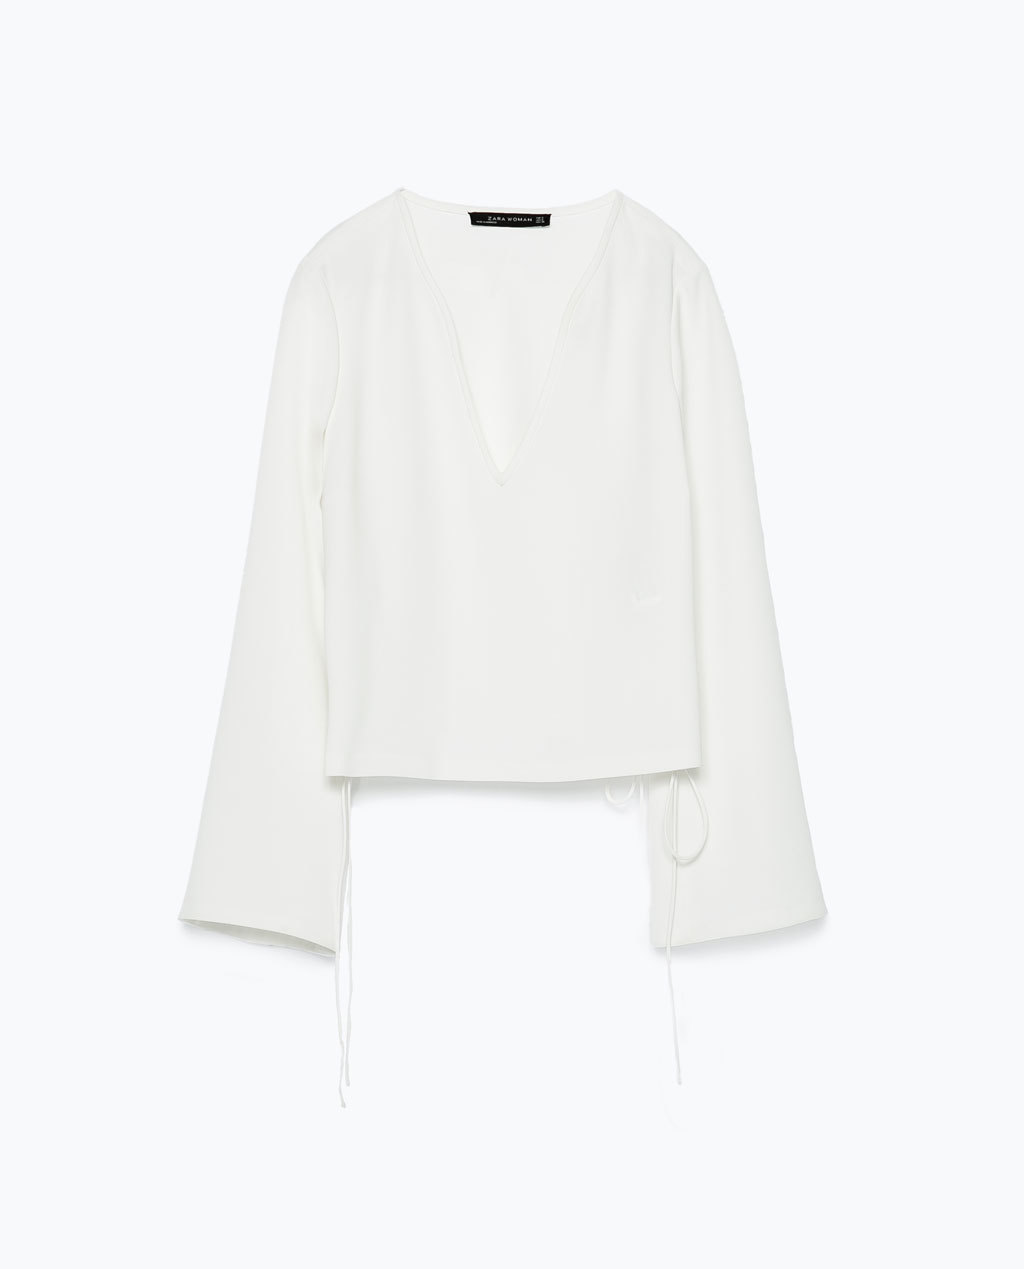 Top - neckline: low v-neck; pattern: plain; predominant colour: ivory/cream; occasions: casual, creative work; length: standard; style: top; fibres: polyester/polyamide - 100%; fit: straight cut; sleeve length: long sleeve; sleeve style: standard; pattern type: fabric; texture group: other - light to midweight; season: s/s 2015; wardrobe: basic